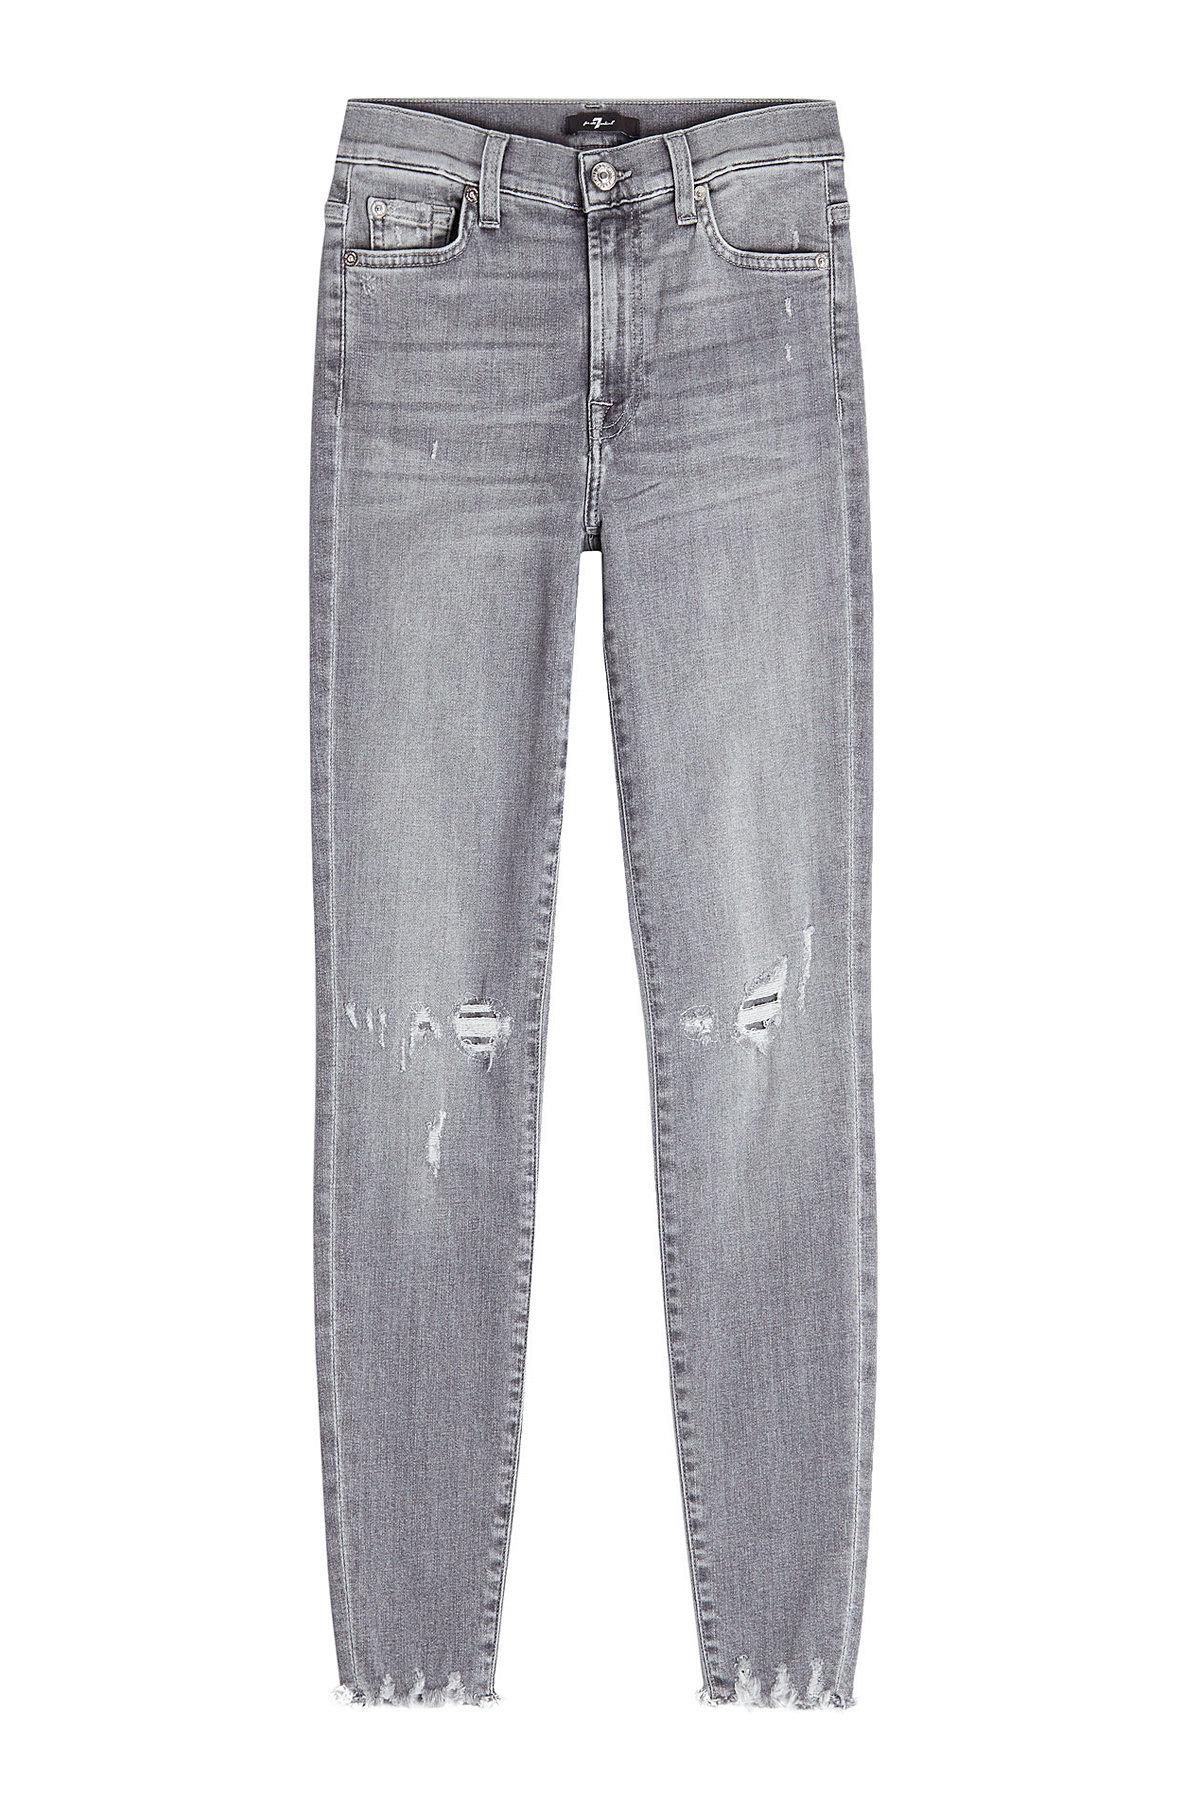 18471f1c649 7 For All Mankind High Waisted Cropped Skinny Jeans In Grey | ModeSens